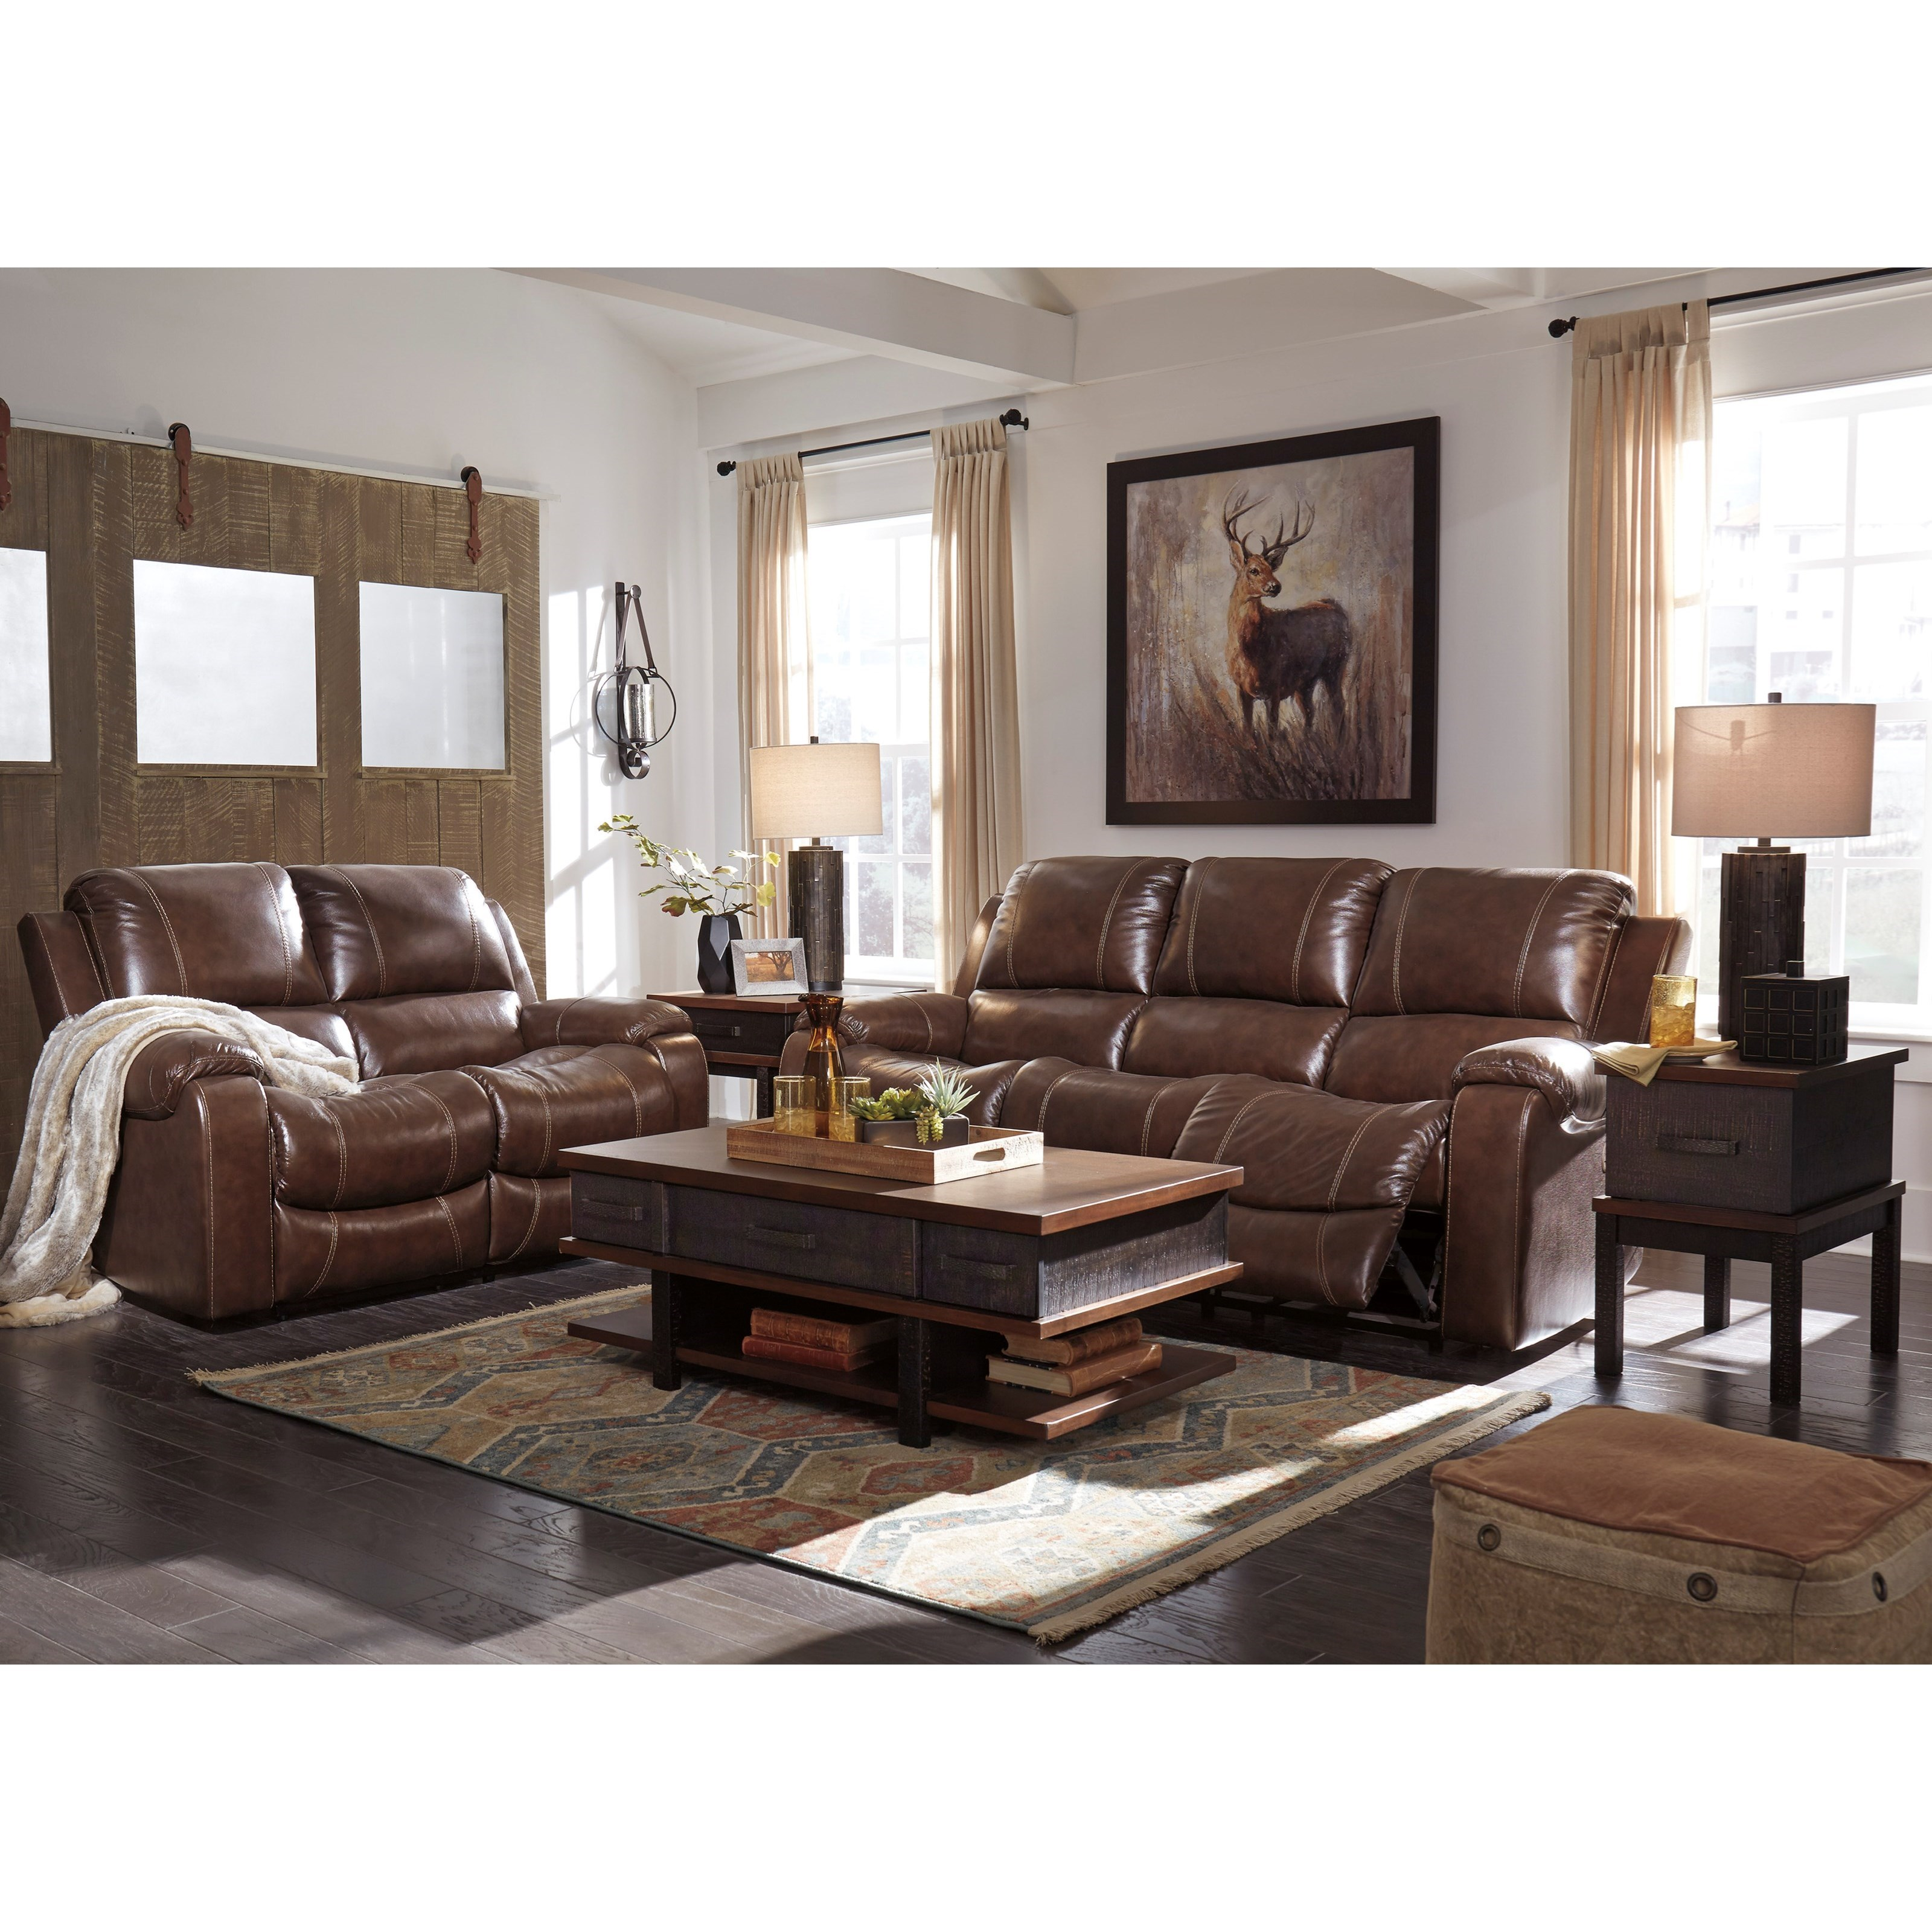 Rackingburg Reclining Living Room Group by Signature Design by Ashley at Northeast Factory Direct